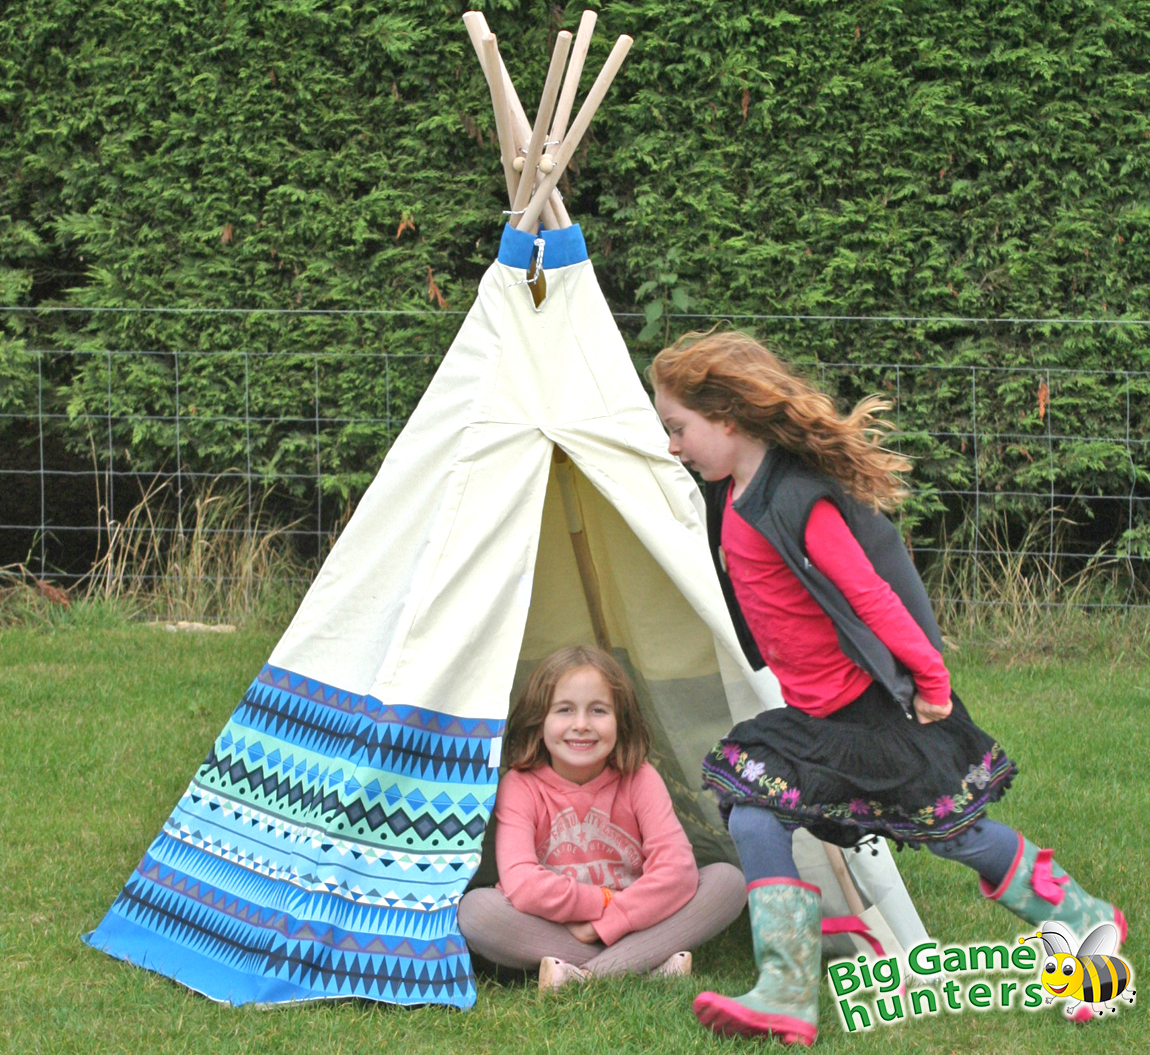 Children's playtent